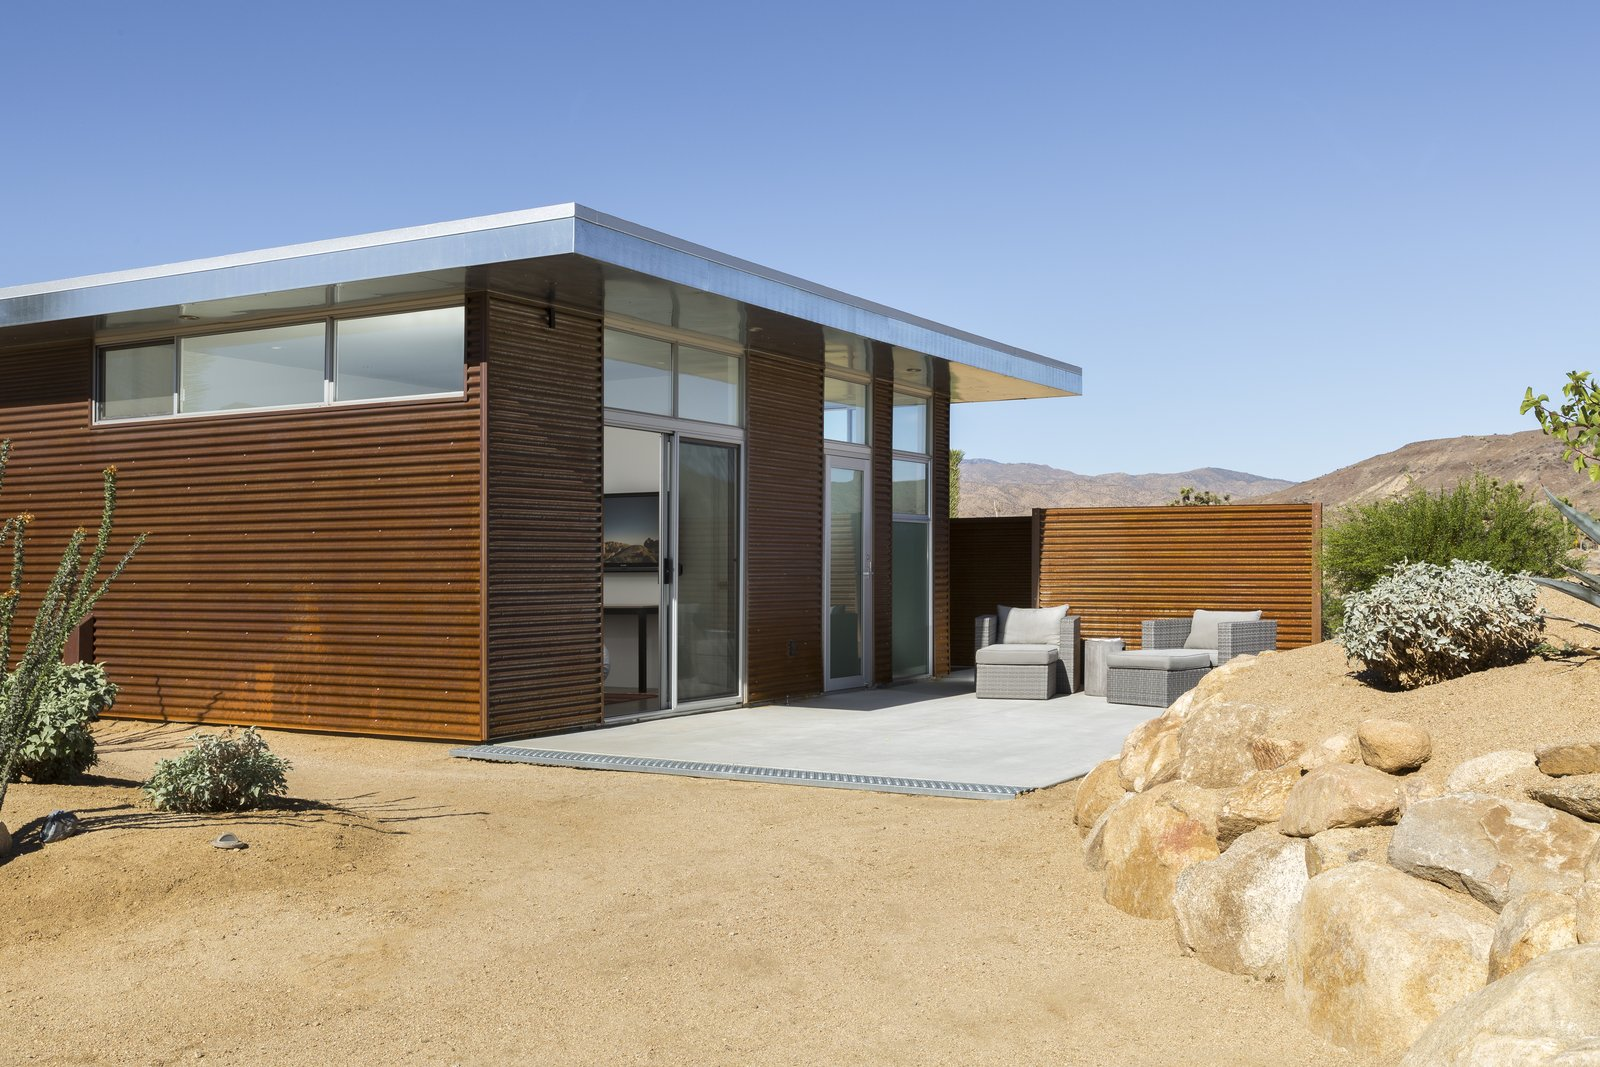 Exterior, Prefab Building Type, Cabin Building Type, Metal Siding Material, Metal Roof Material, and Flat RoofLine Casita  Photo 2 of 10 in This Modern Homestead With a Vintage Trailer Offers Adventure in California's High Desert